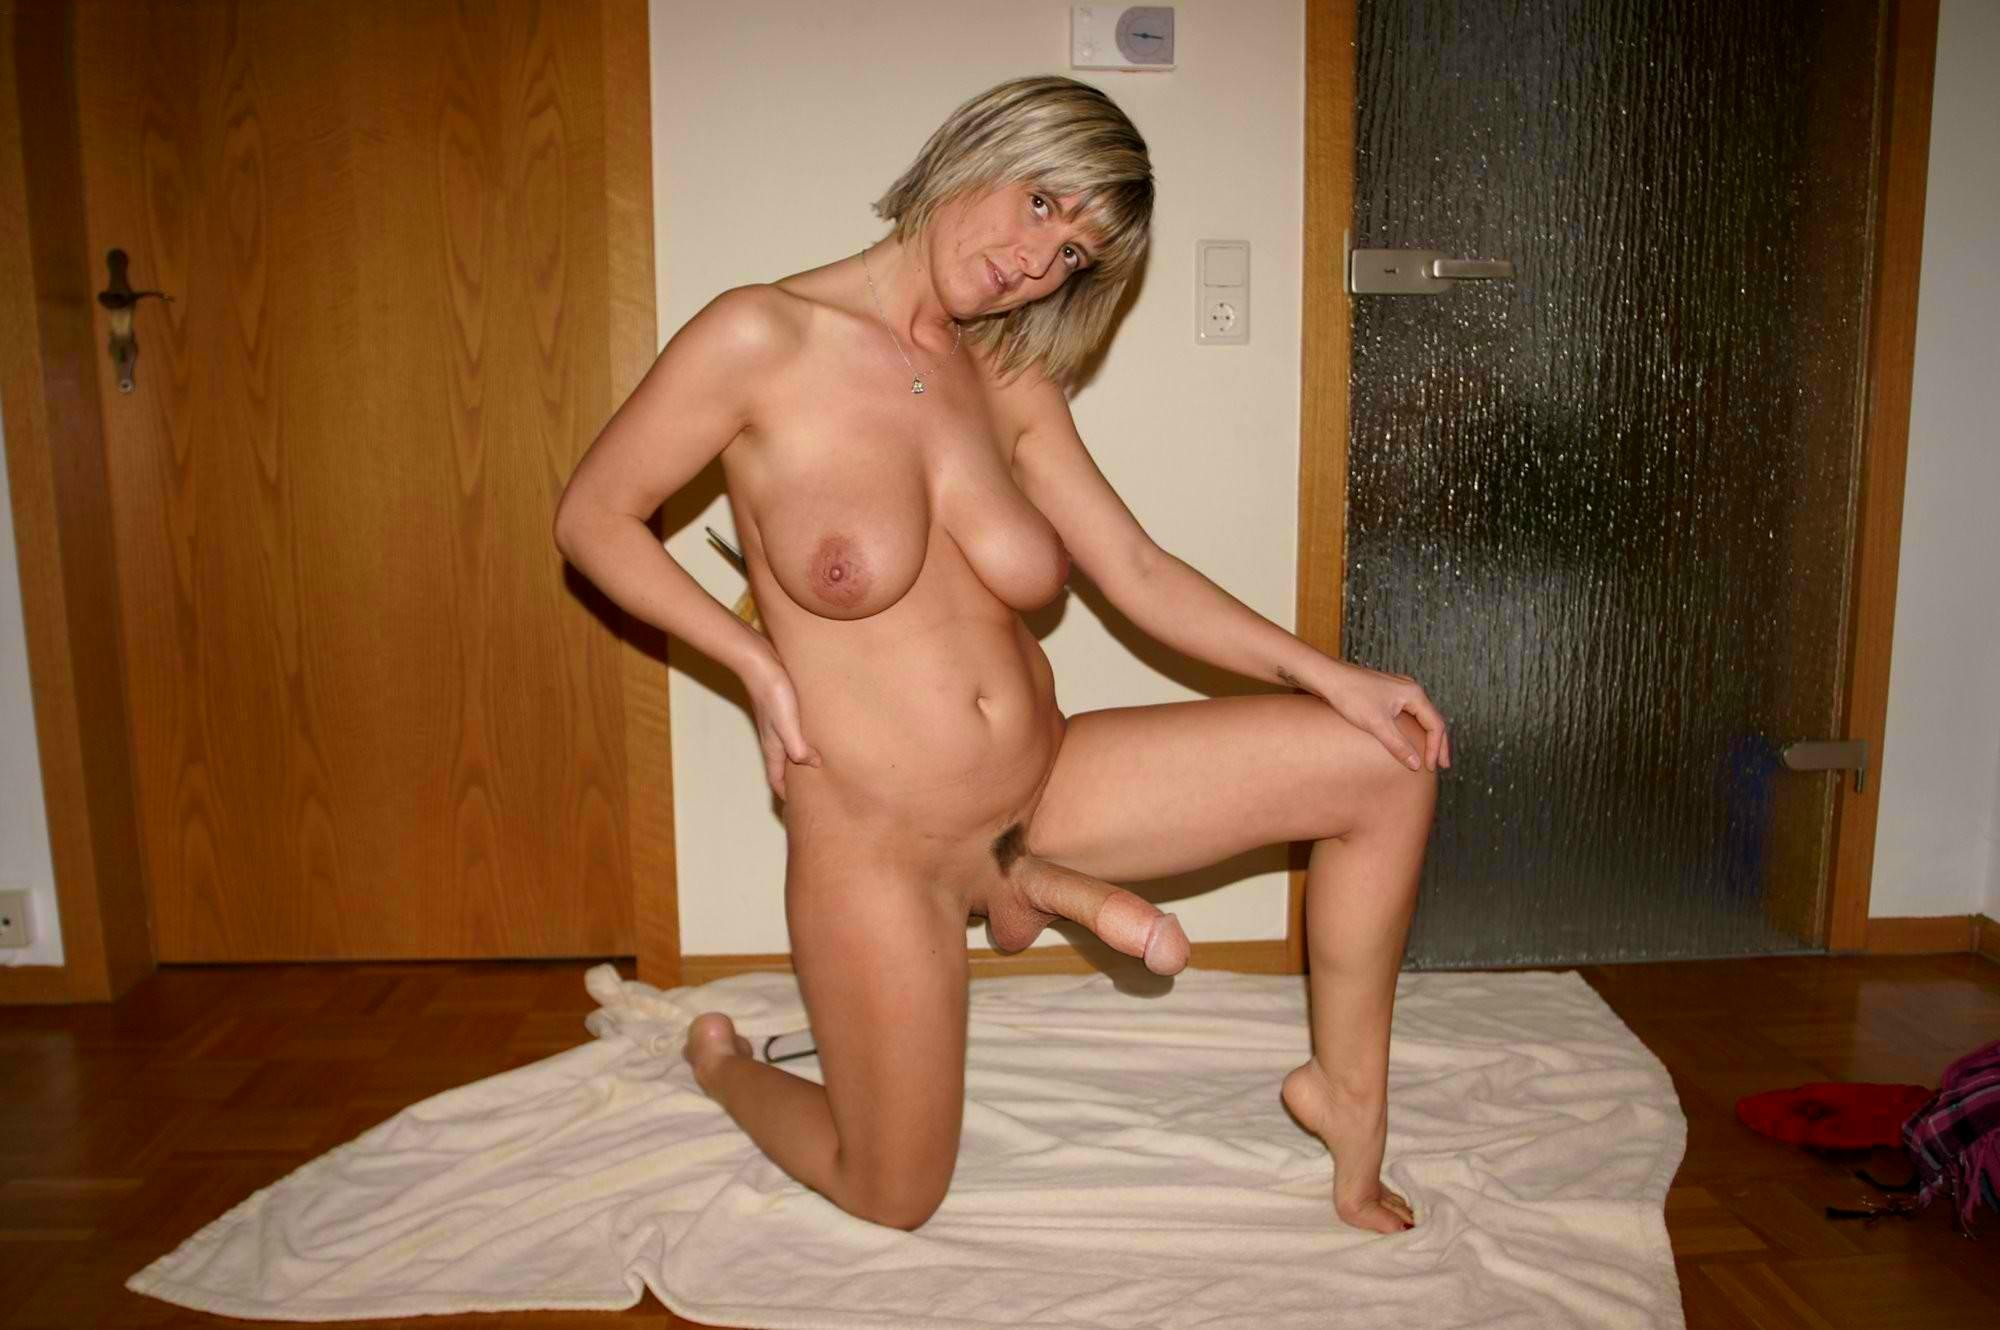 My wife old friend 3some